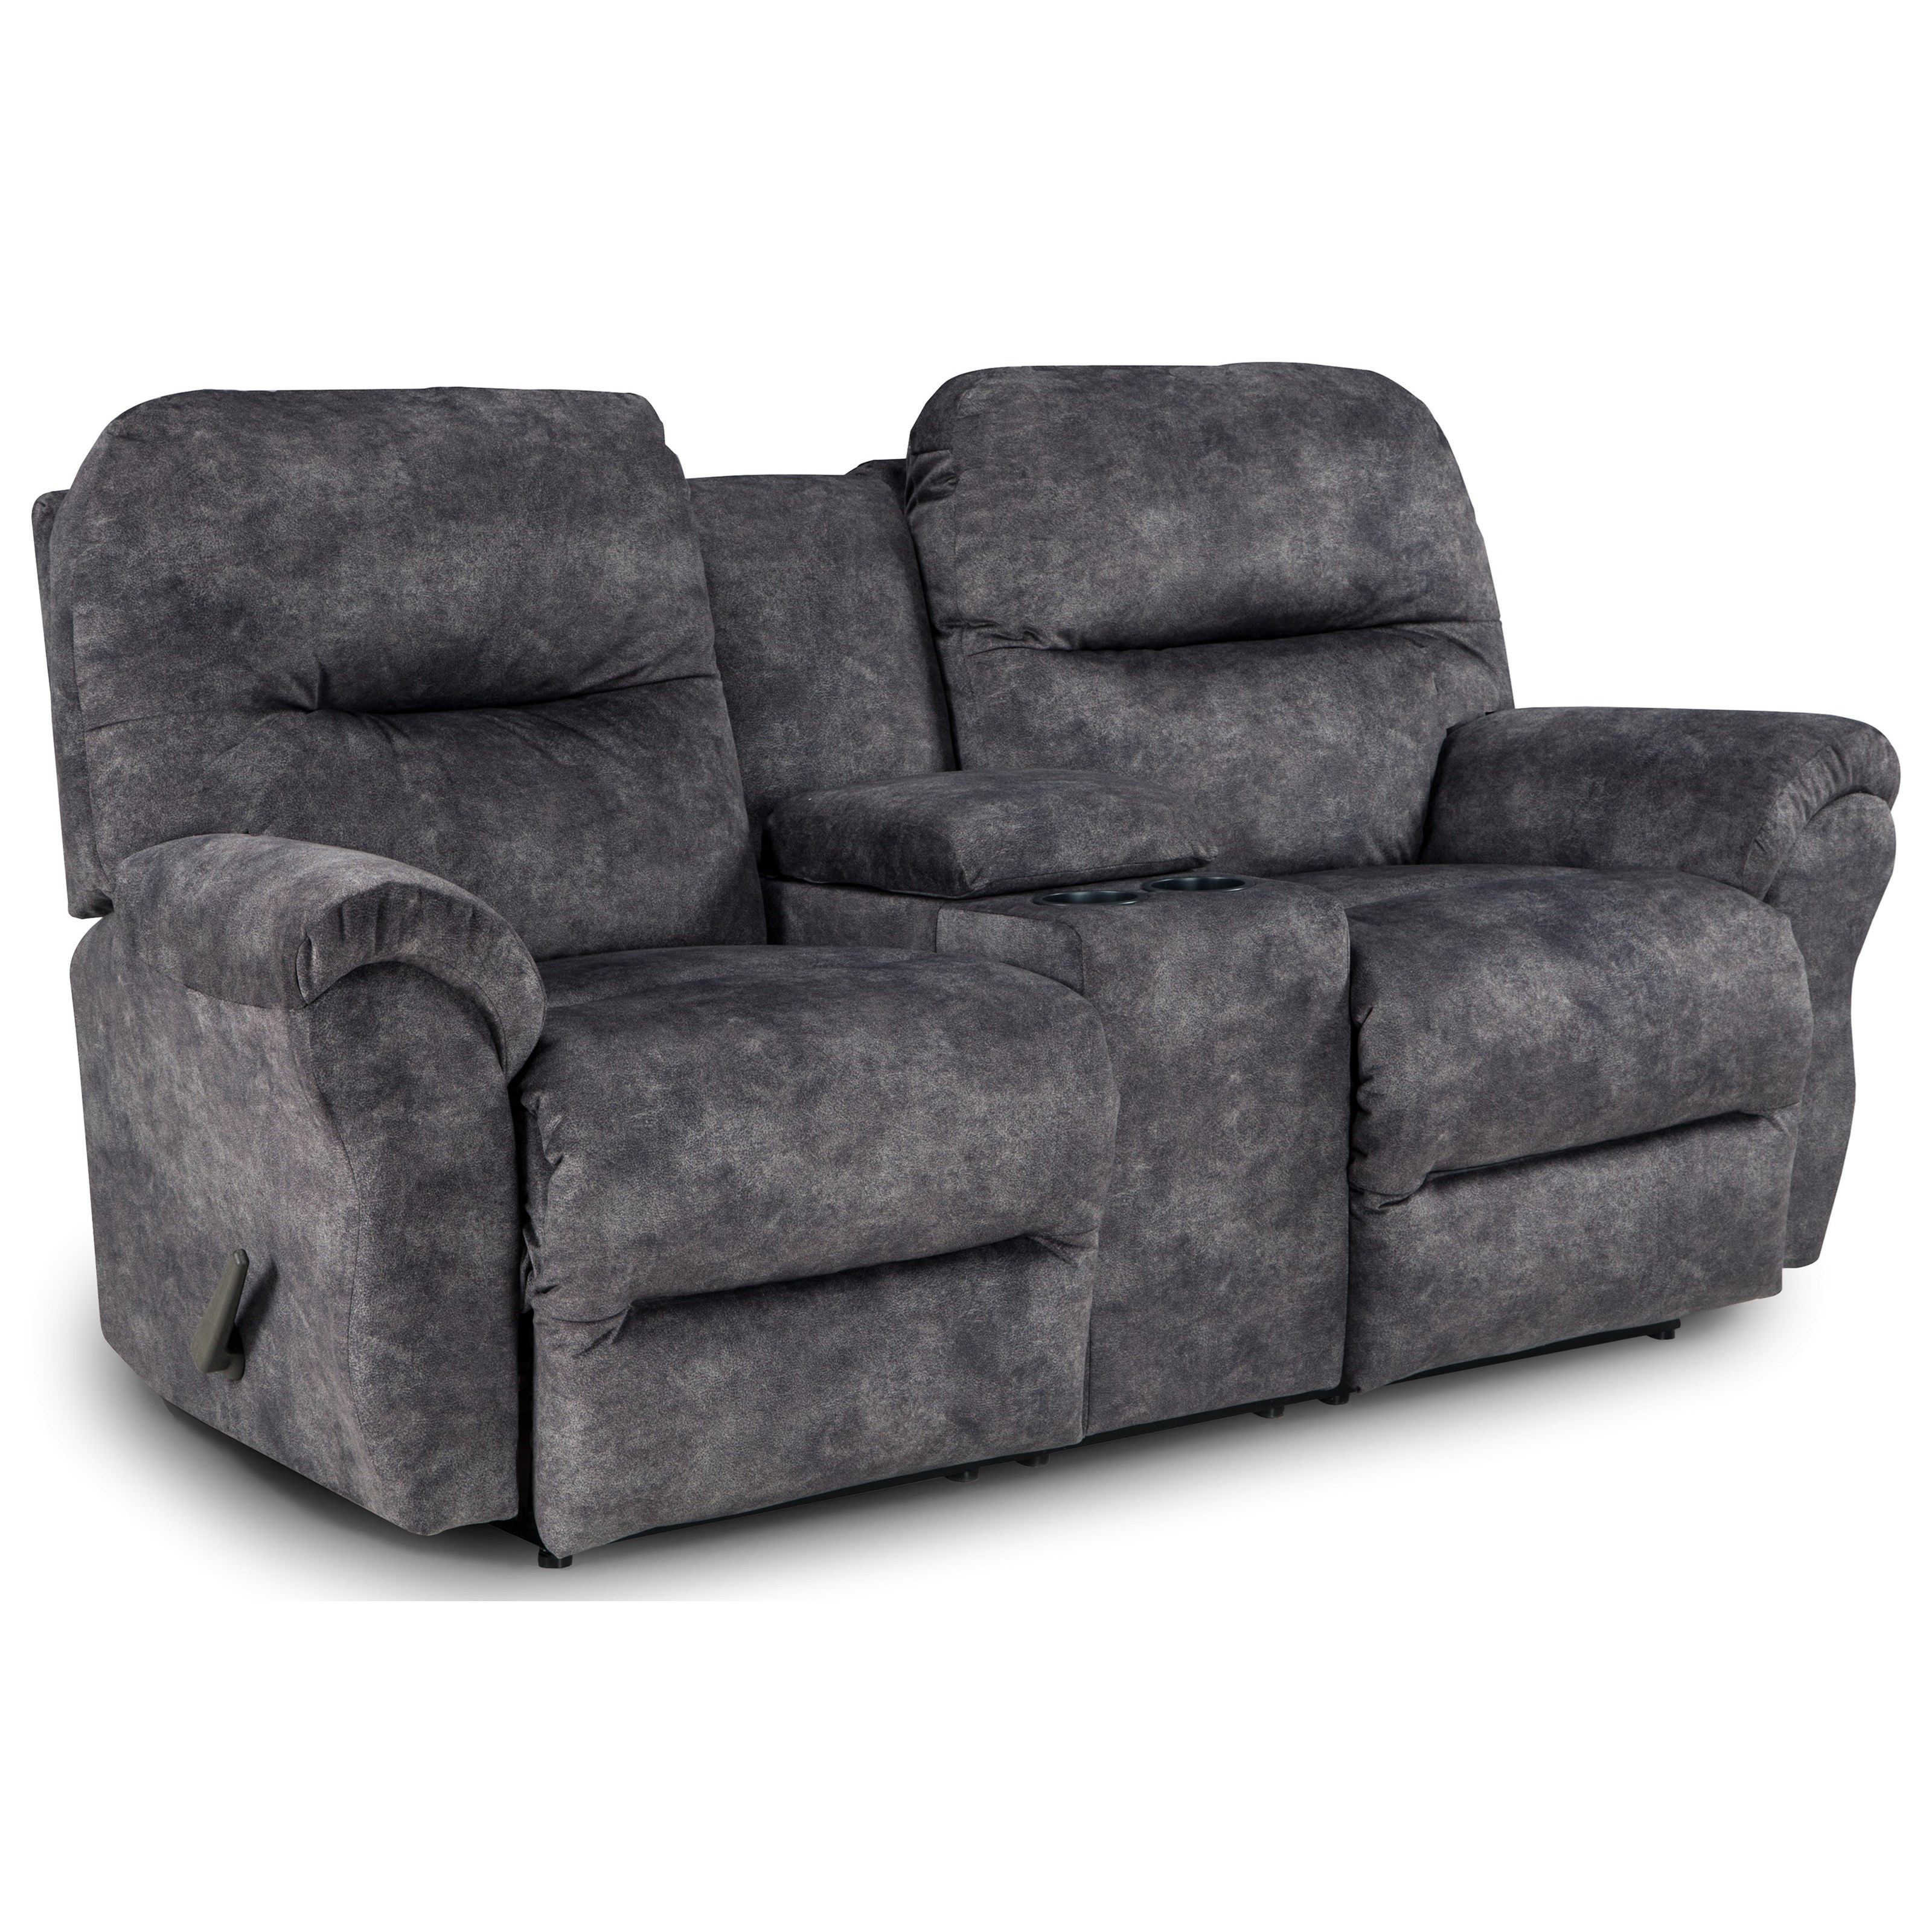 Bodie Space Saver Reclining Loveseat by Best Home Furnishings at Saugerties Furniture Mart